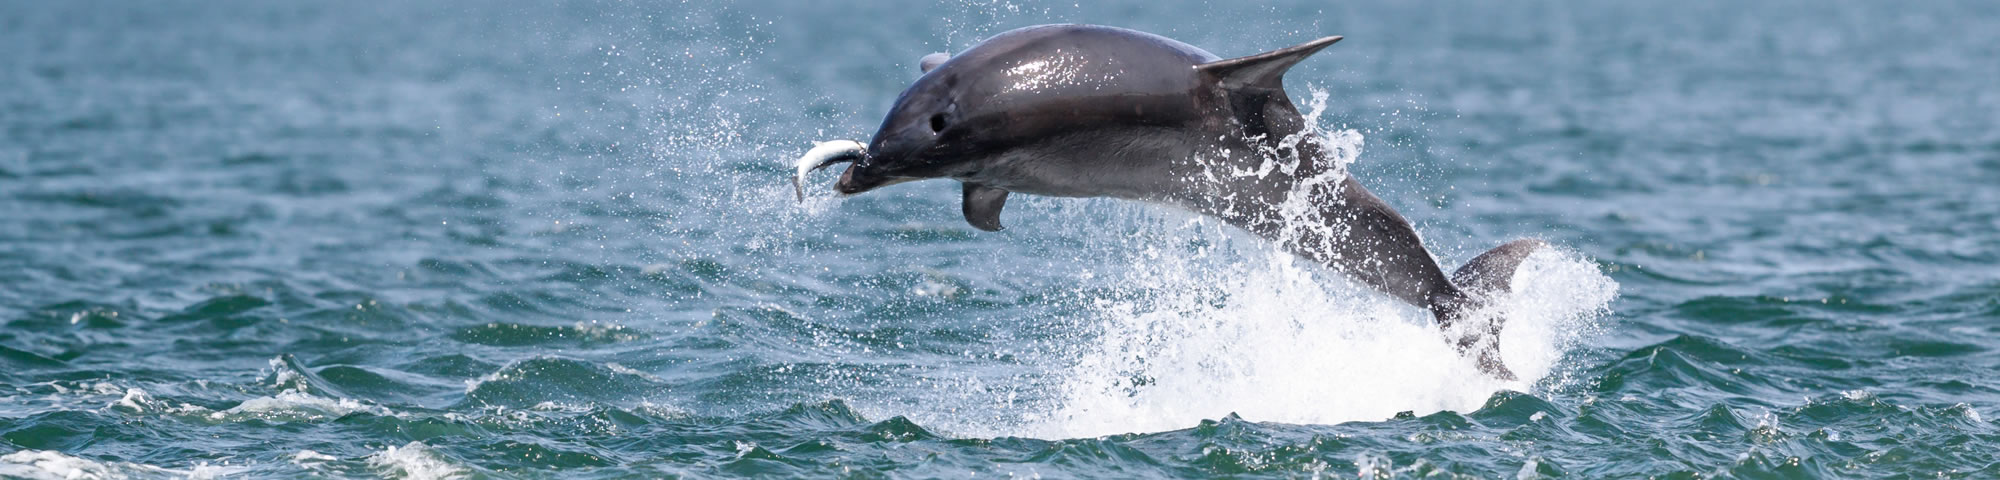 Dolphin watch off Chanonry Point